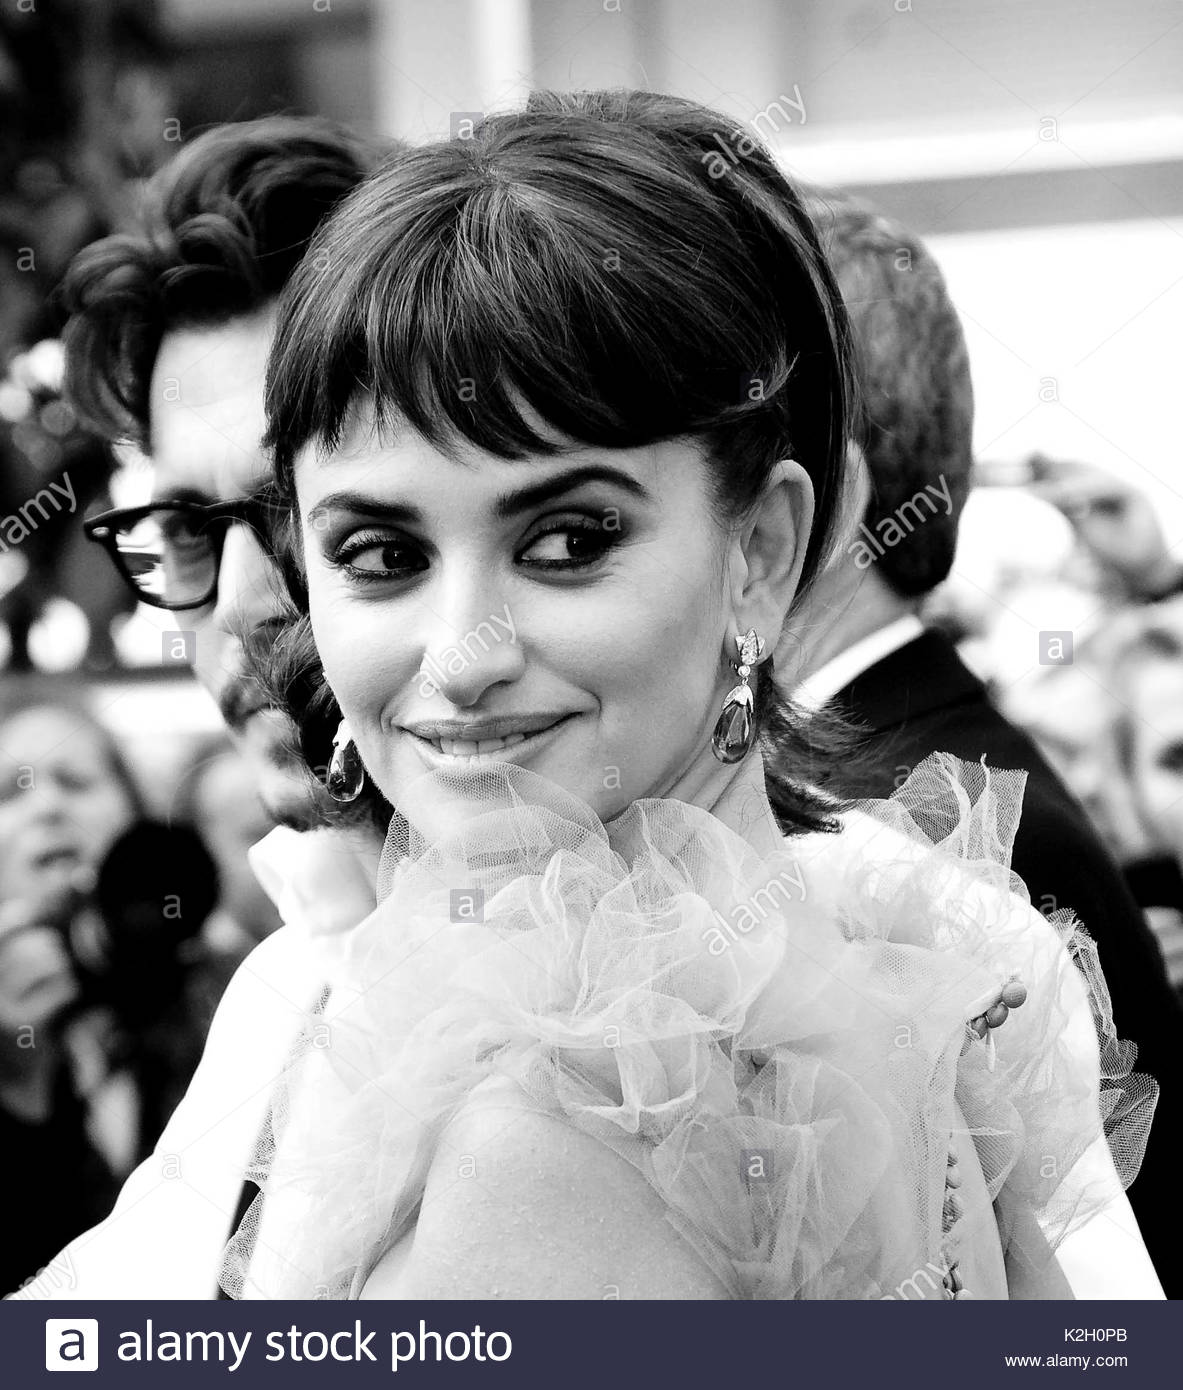 af31e0e79 Arrivals at the 'Pirates of the Caribbean: On Stranger Tides' premiere  during the 64th Annual Cannes Film Festival, France.